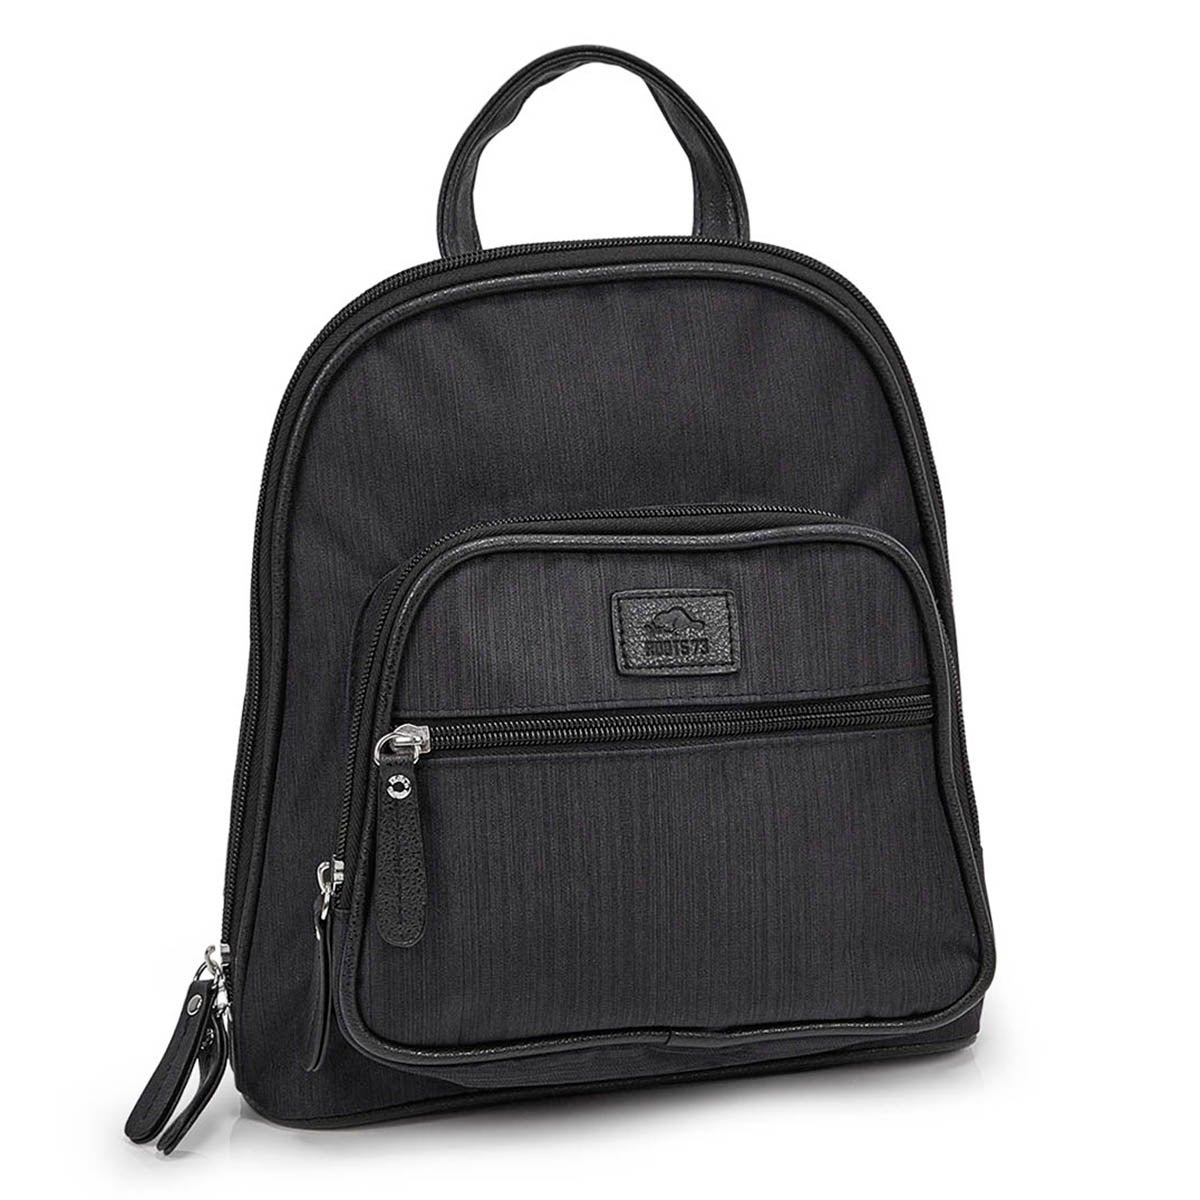 Lds blk double compartment mini backpack